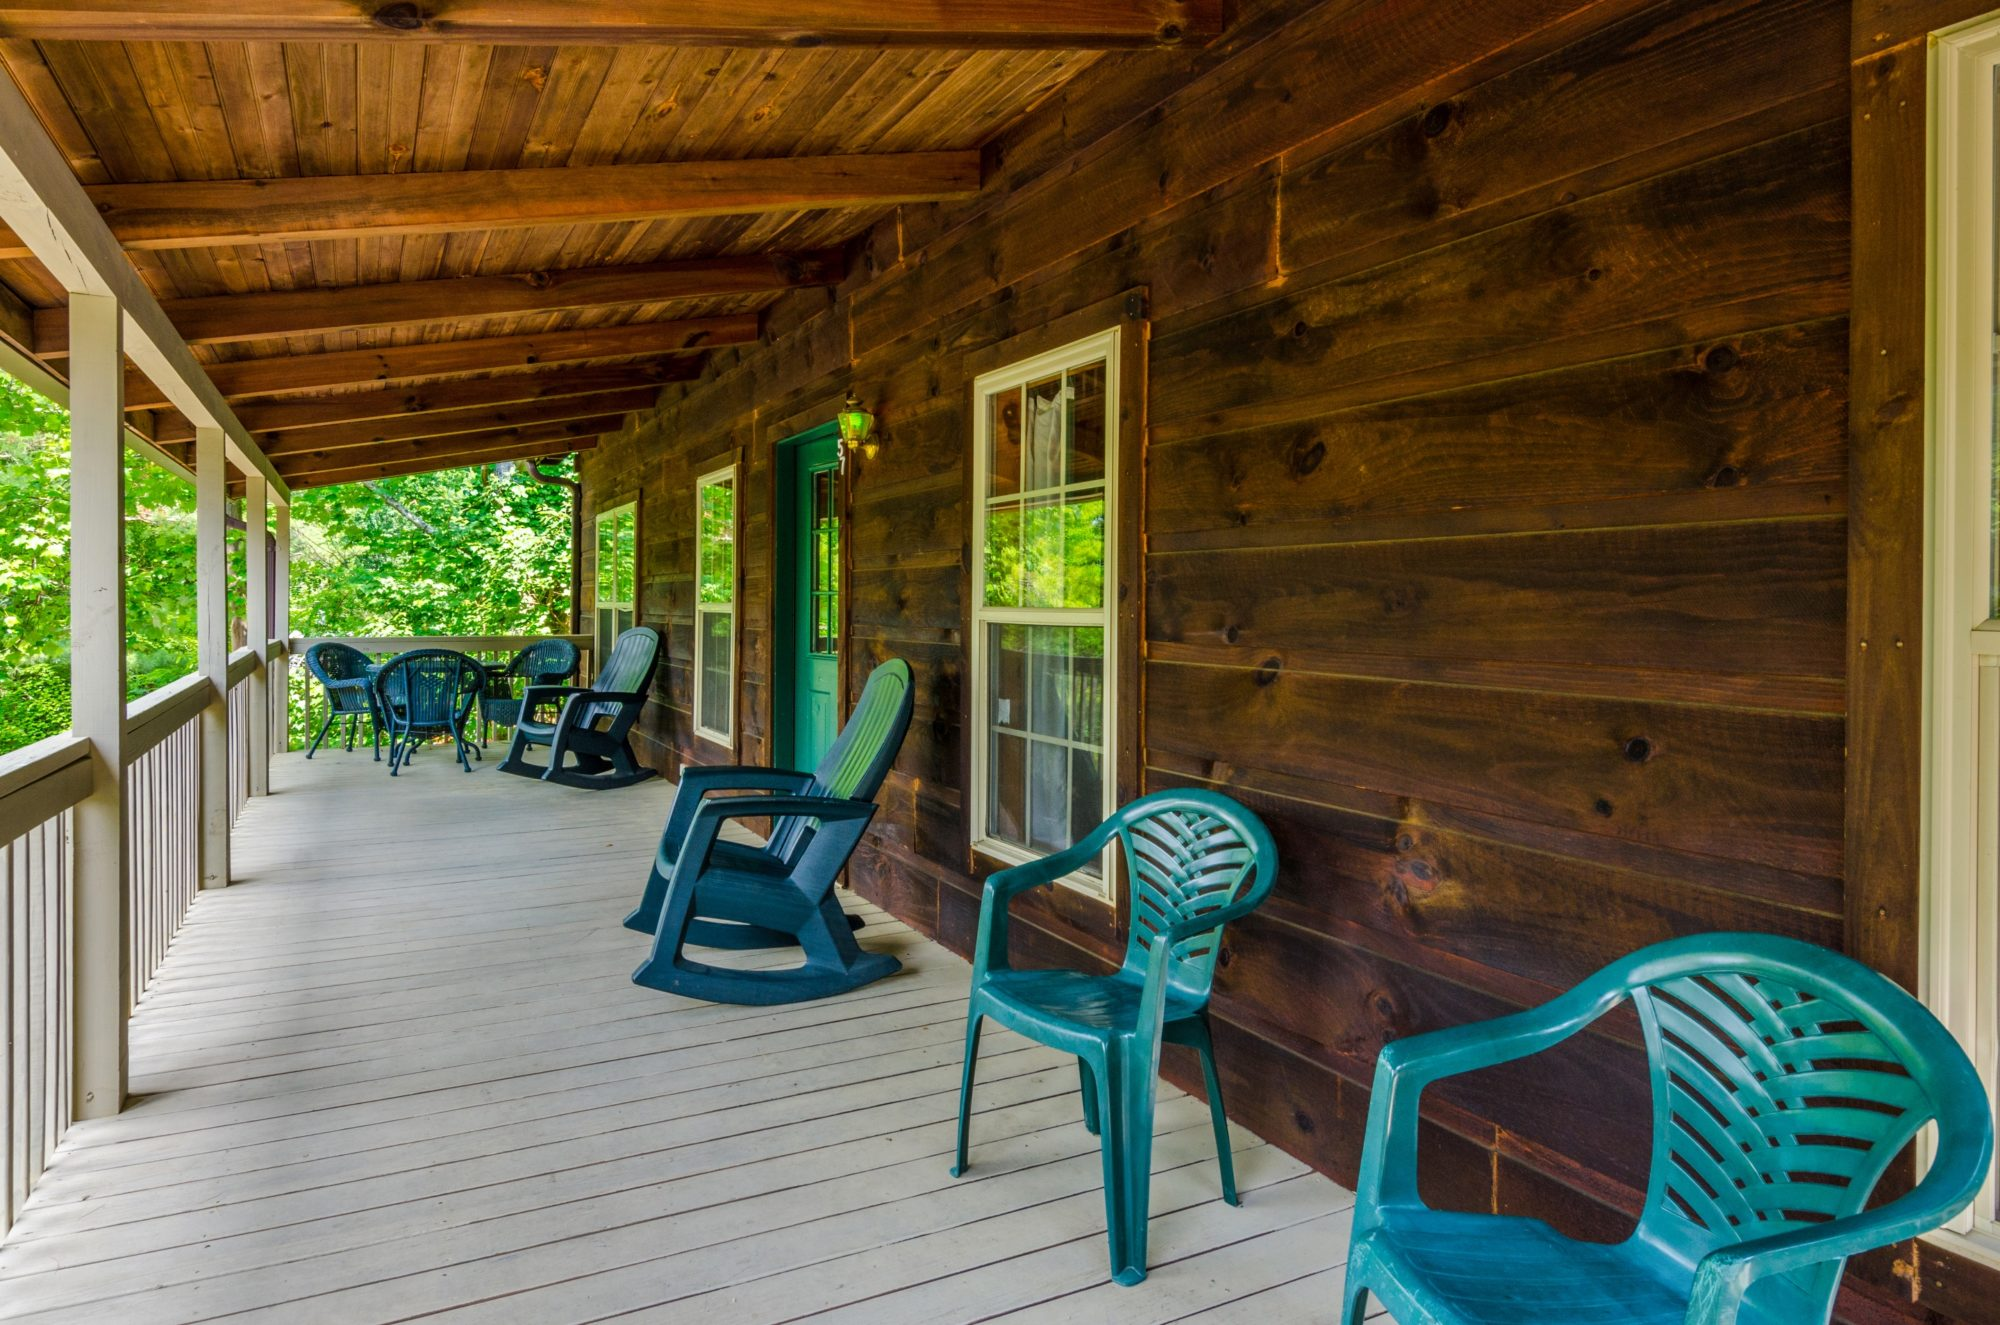 Tree shaded wooden porch with patio dining set, rocking chairs and extra chairs, cabin door and exterior light.